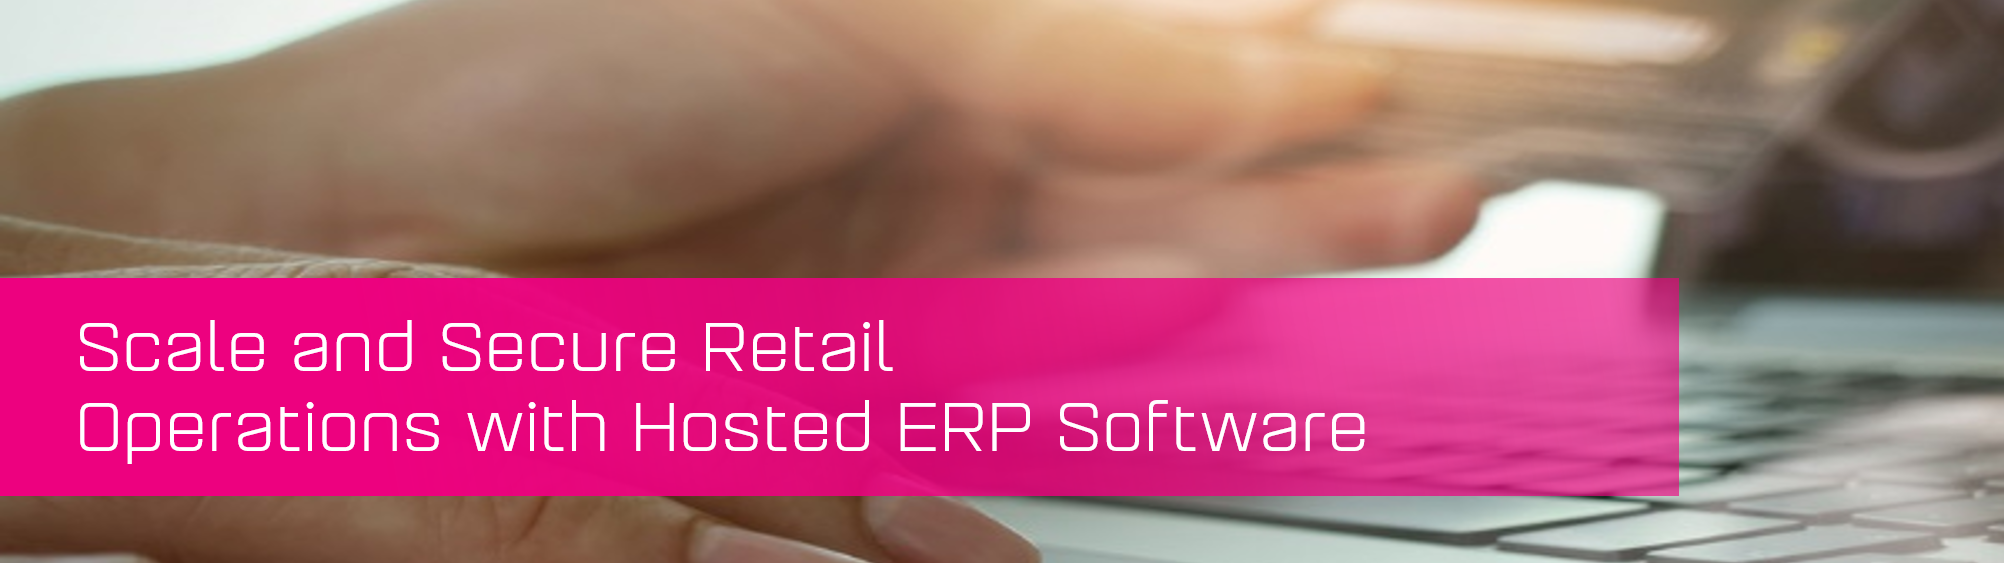 KCS SA - Blog - Scale and Secure retail with hosted erp banner image